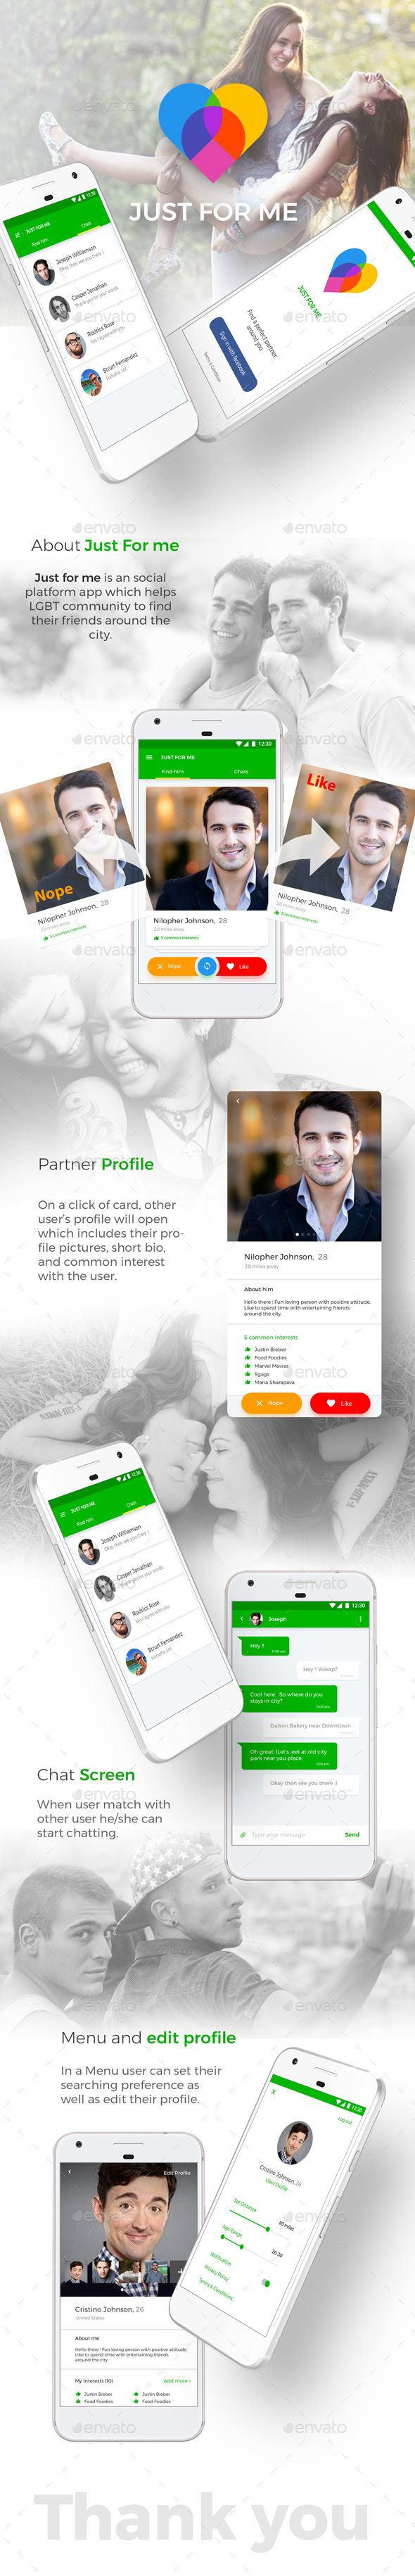 Dating App User Interfaces Kit like Tinder | Just For Me for Android + iOS  #uidesign #mobileui #appui